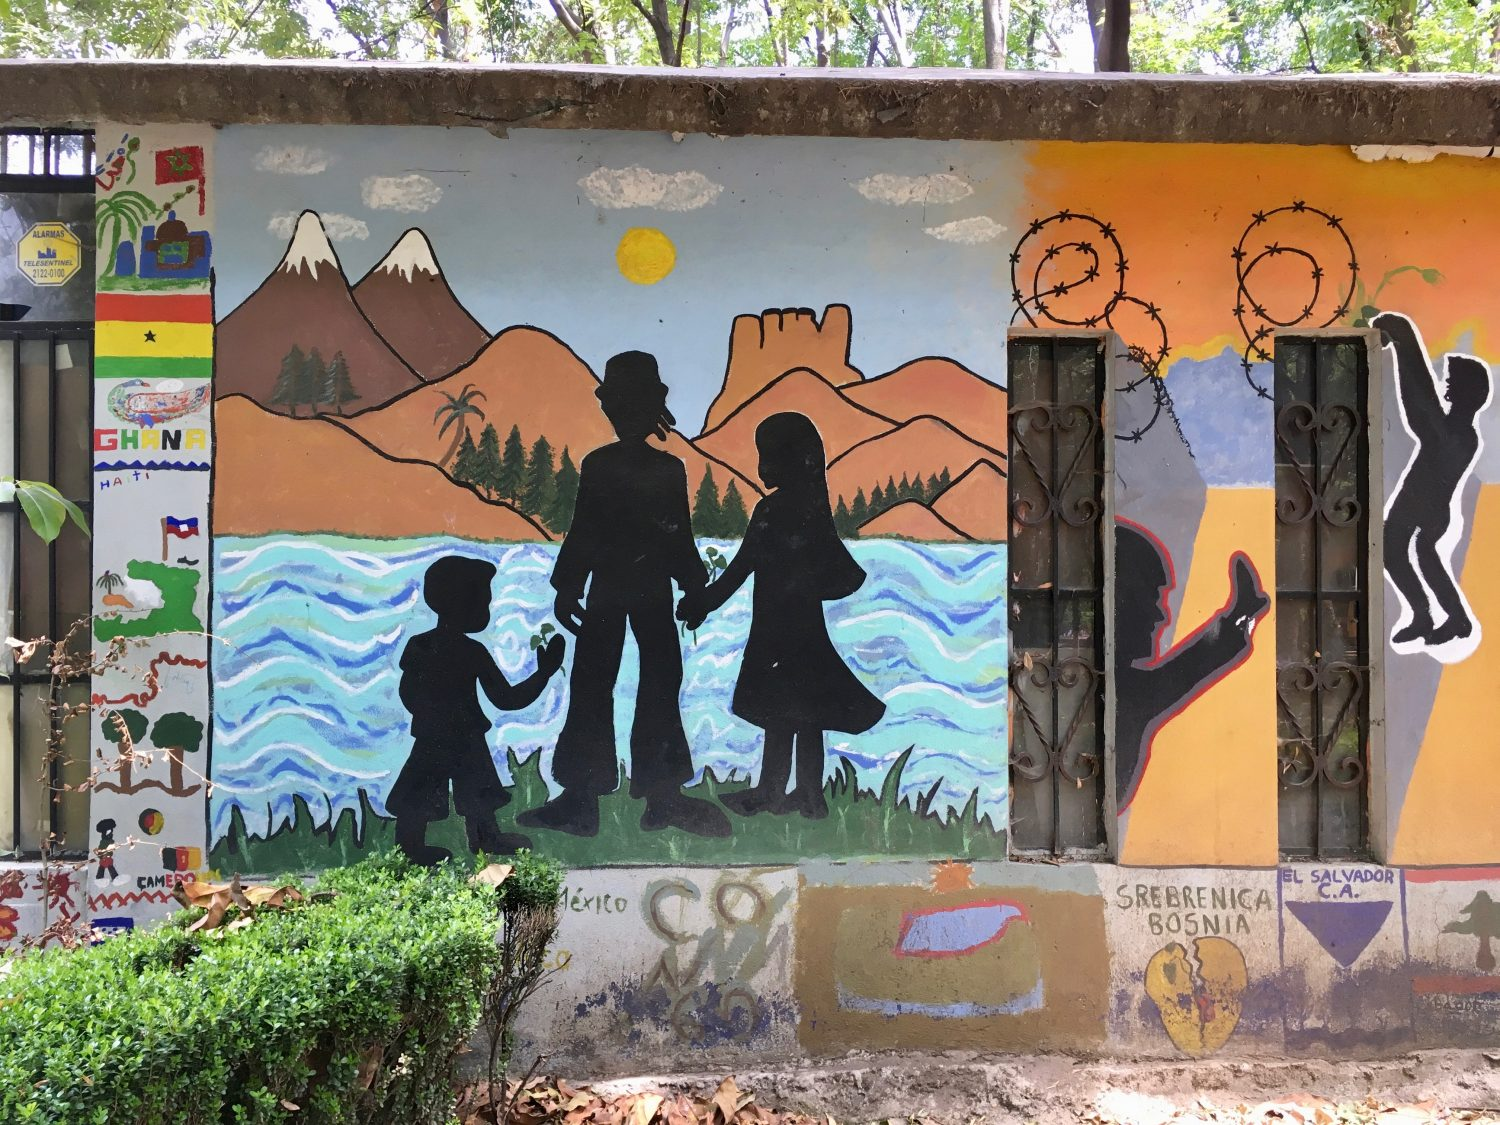 A mural at Mexico City's Casa Refugiados (Refugee House) depicts Central American asylum-seekers gazing across the Suchiate River toward Mexico. Photo by Hannah Carrese